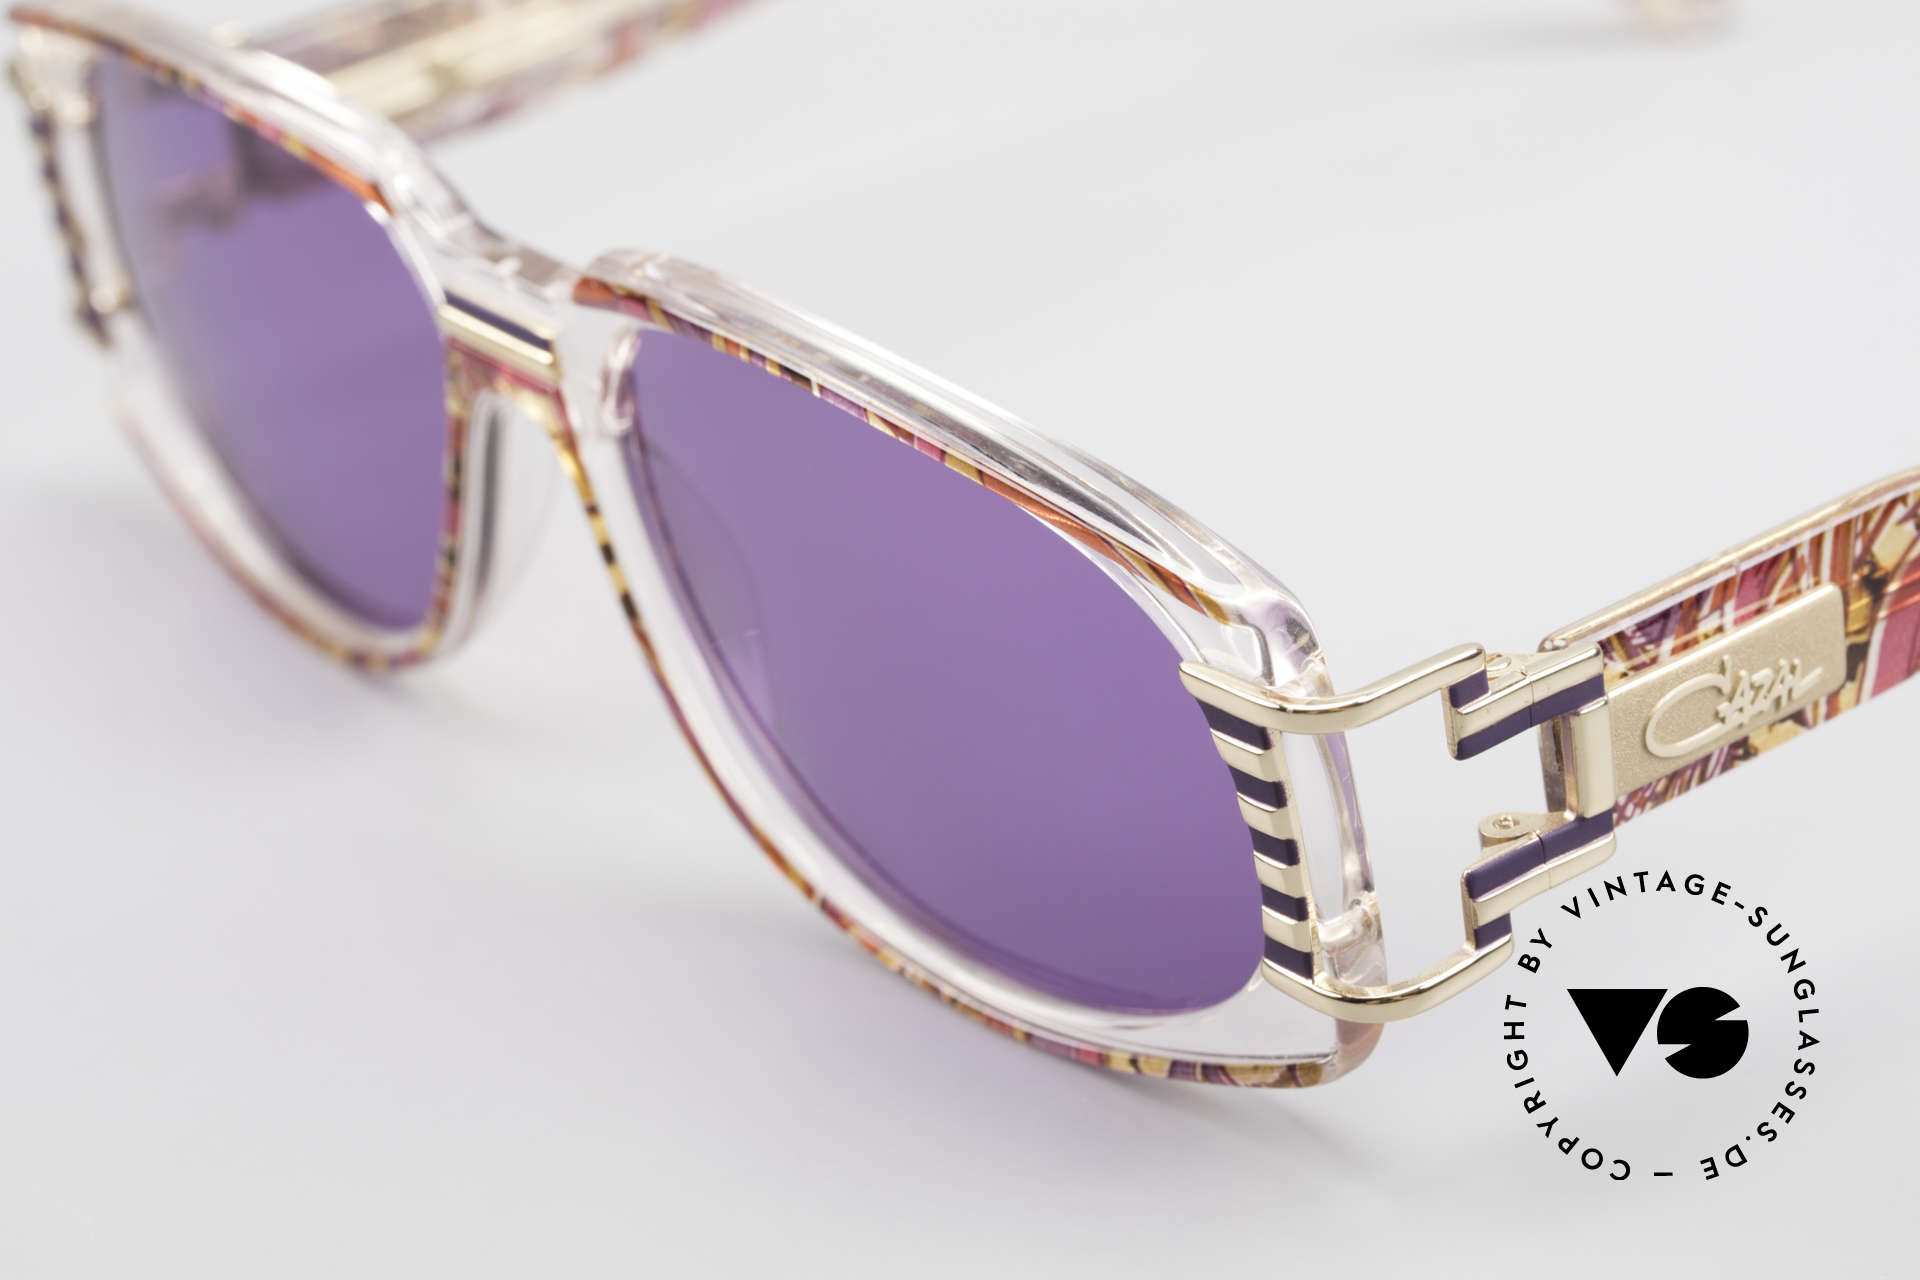 Cazal 372 Rare HipHop Sunglasses 90's, CAZAL = part of the US hip-hop-scene in the 80's and 90's, Made for Men and Women